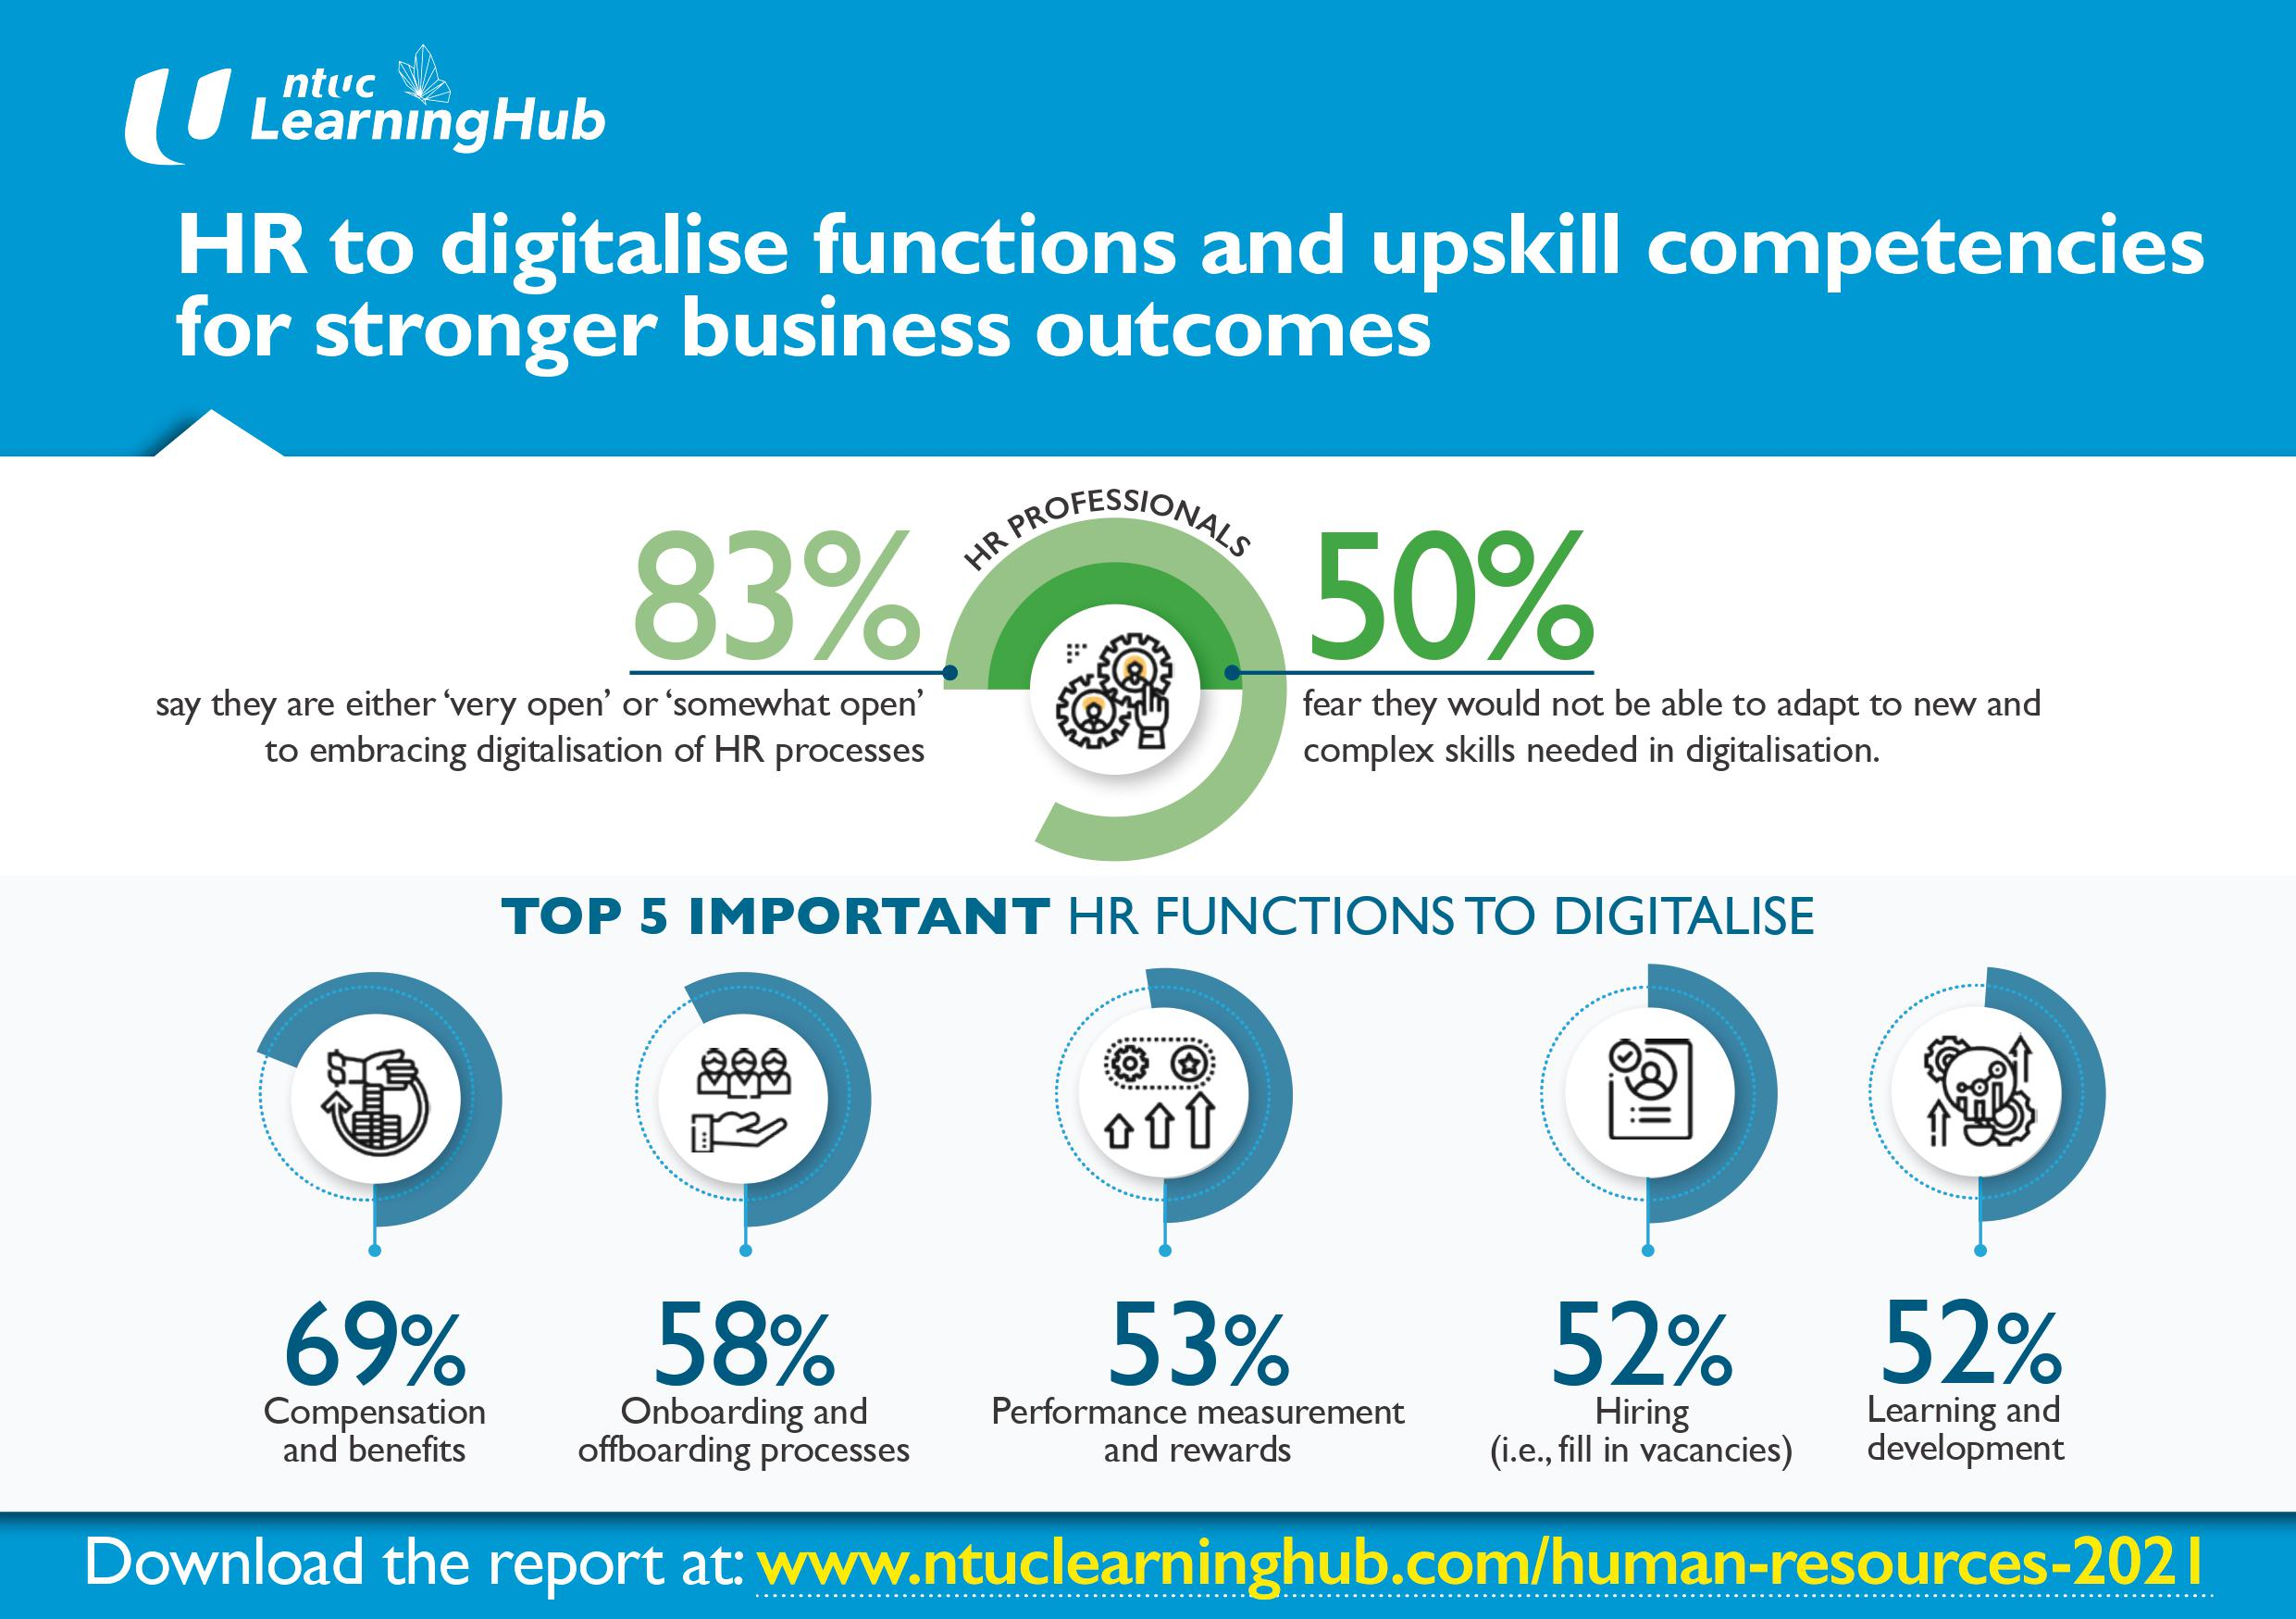 Leaders See Need For HR To Digitalise Functions Upskill Competencies For Stronger Business Outcomes